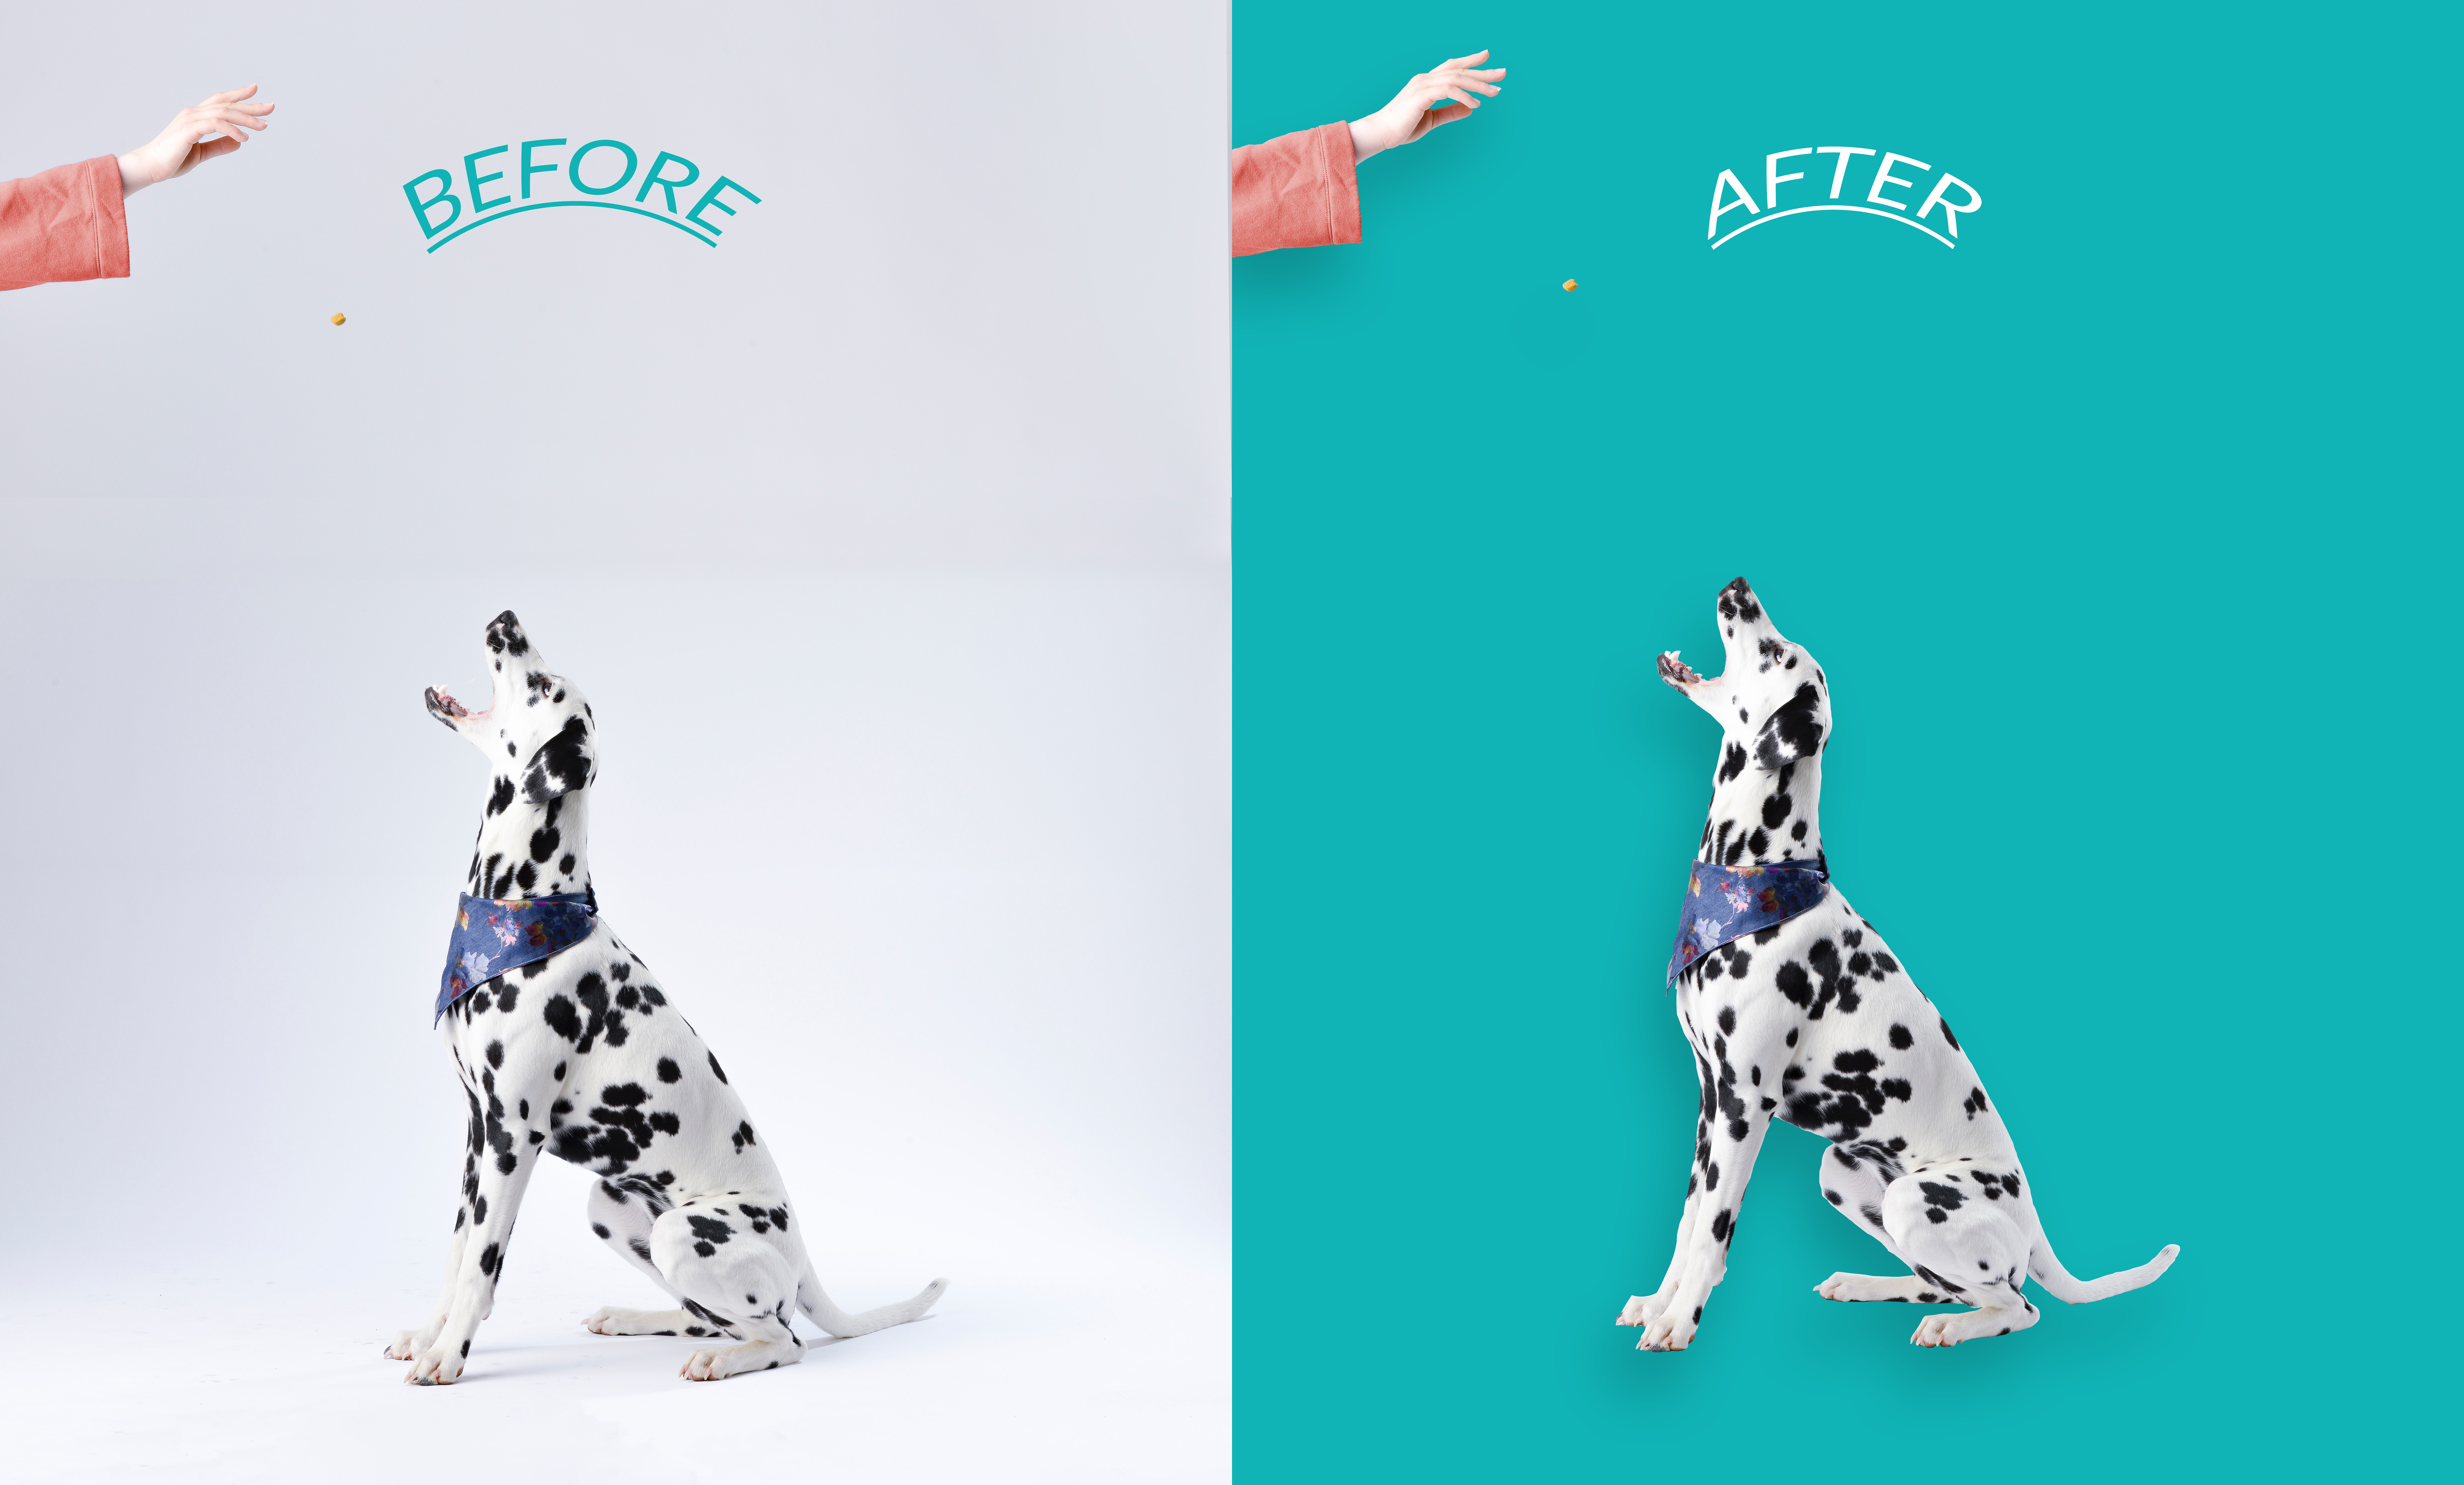 I will remove 15 photos background and cut out images professionally